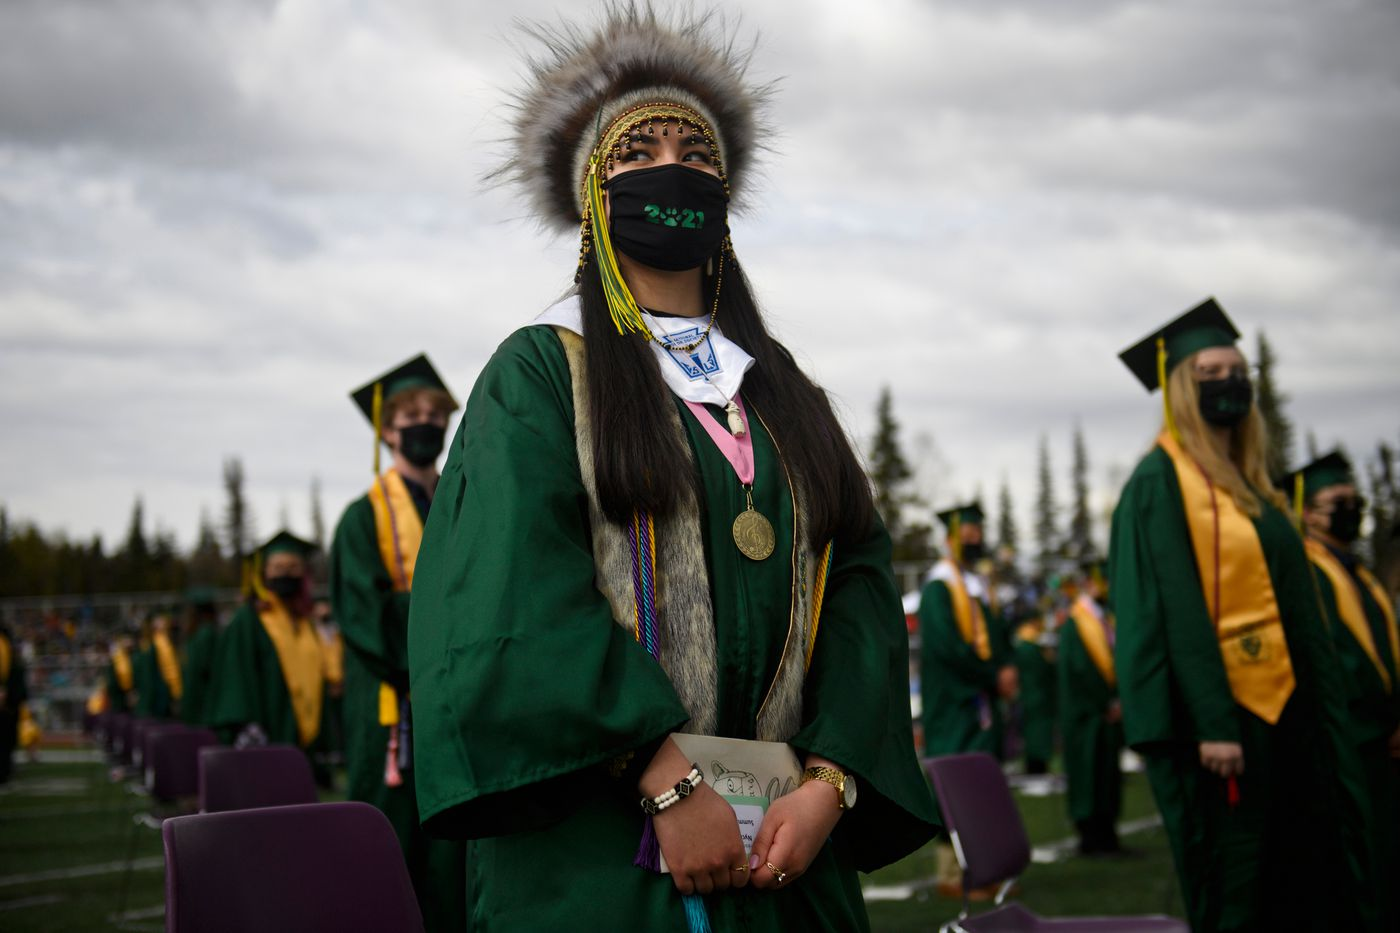 Service High School graduating senior Nyché Andrew worked to change school district's policy to allow for cultural regalia at graduation ceremonies. She wore a Yup'ik headdress, a sealskin sash and mukluks when she graduated on May 12, 2021. (Marc Lester / ADN)